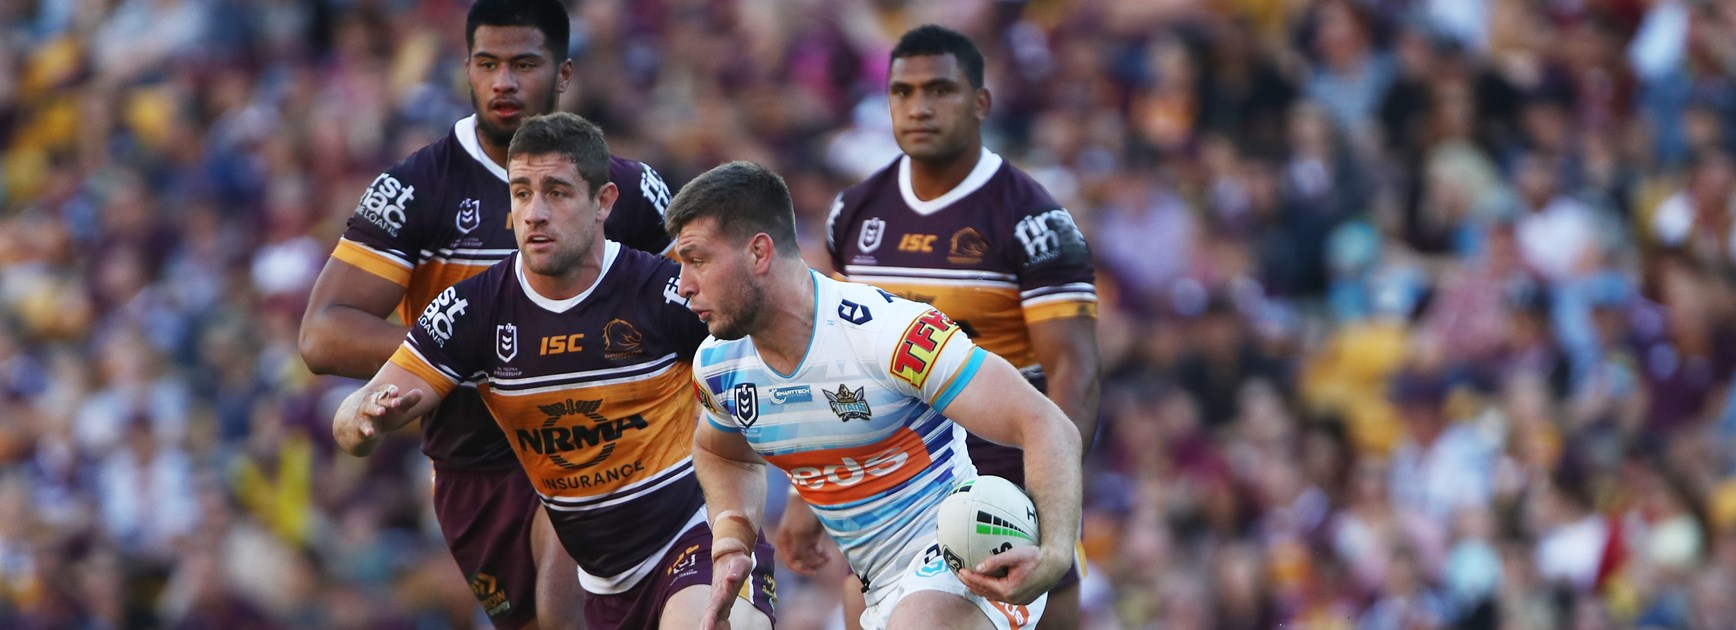 Tough Titans Tackle their Way to Terrific Win Over Broncos